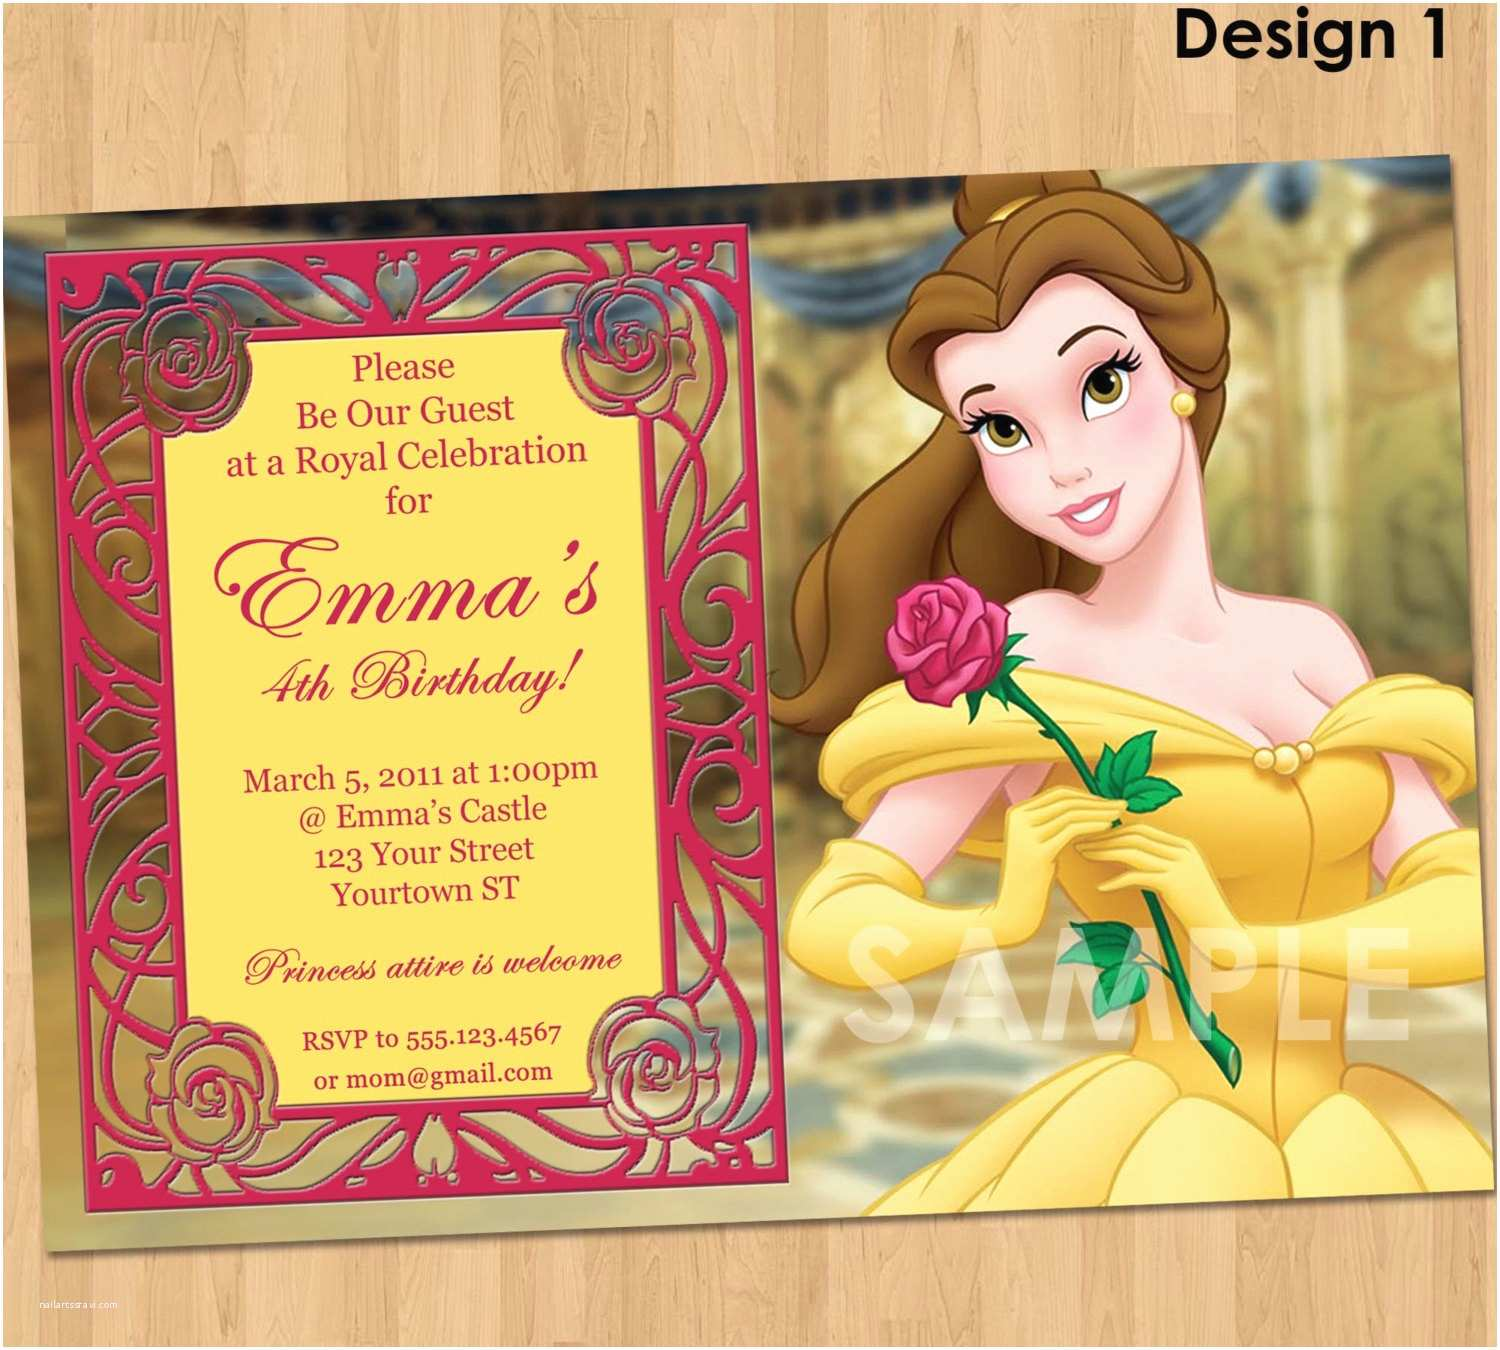 Beauty and the Beast Party Invitations Princess Belle Invitation Beauty and the Beast Party